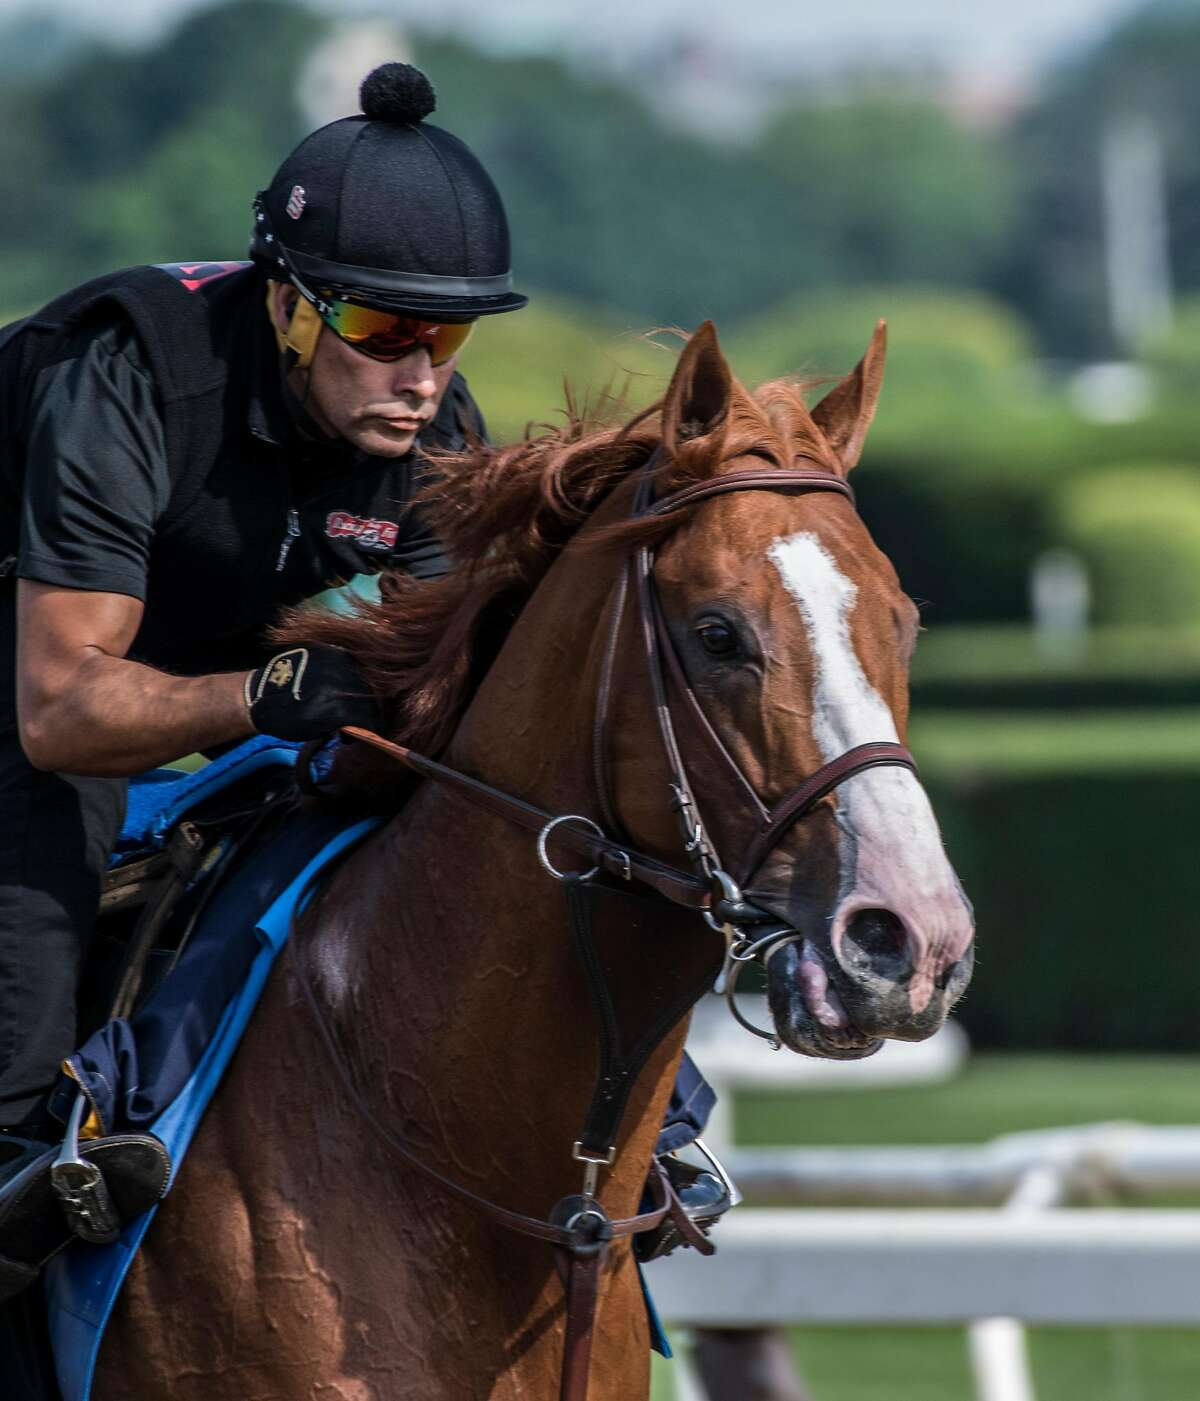 Kentucky Derby and Preakness winner Justify out for his morning exercise at Belmont Park Friday June 8, 2018, in Elmont, N.Y. (Skip Dickstein/Times Union)